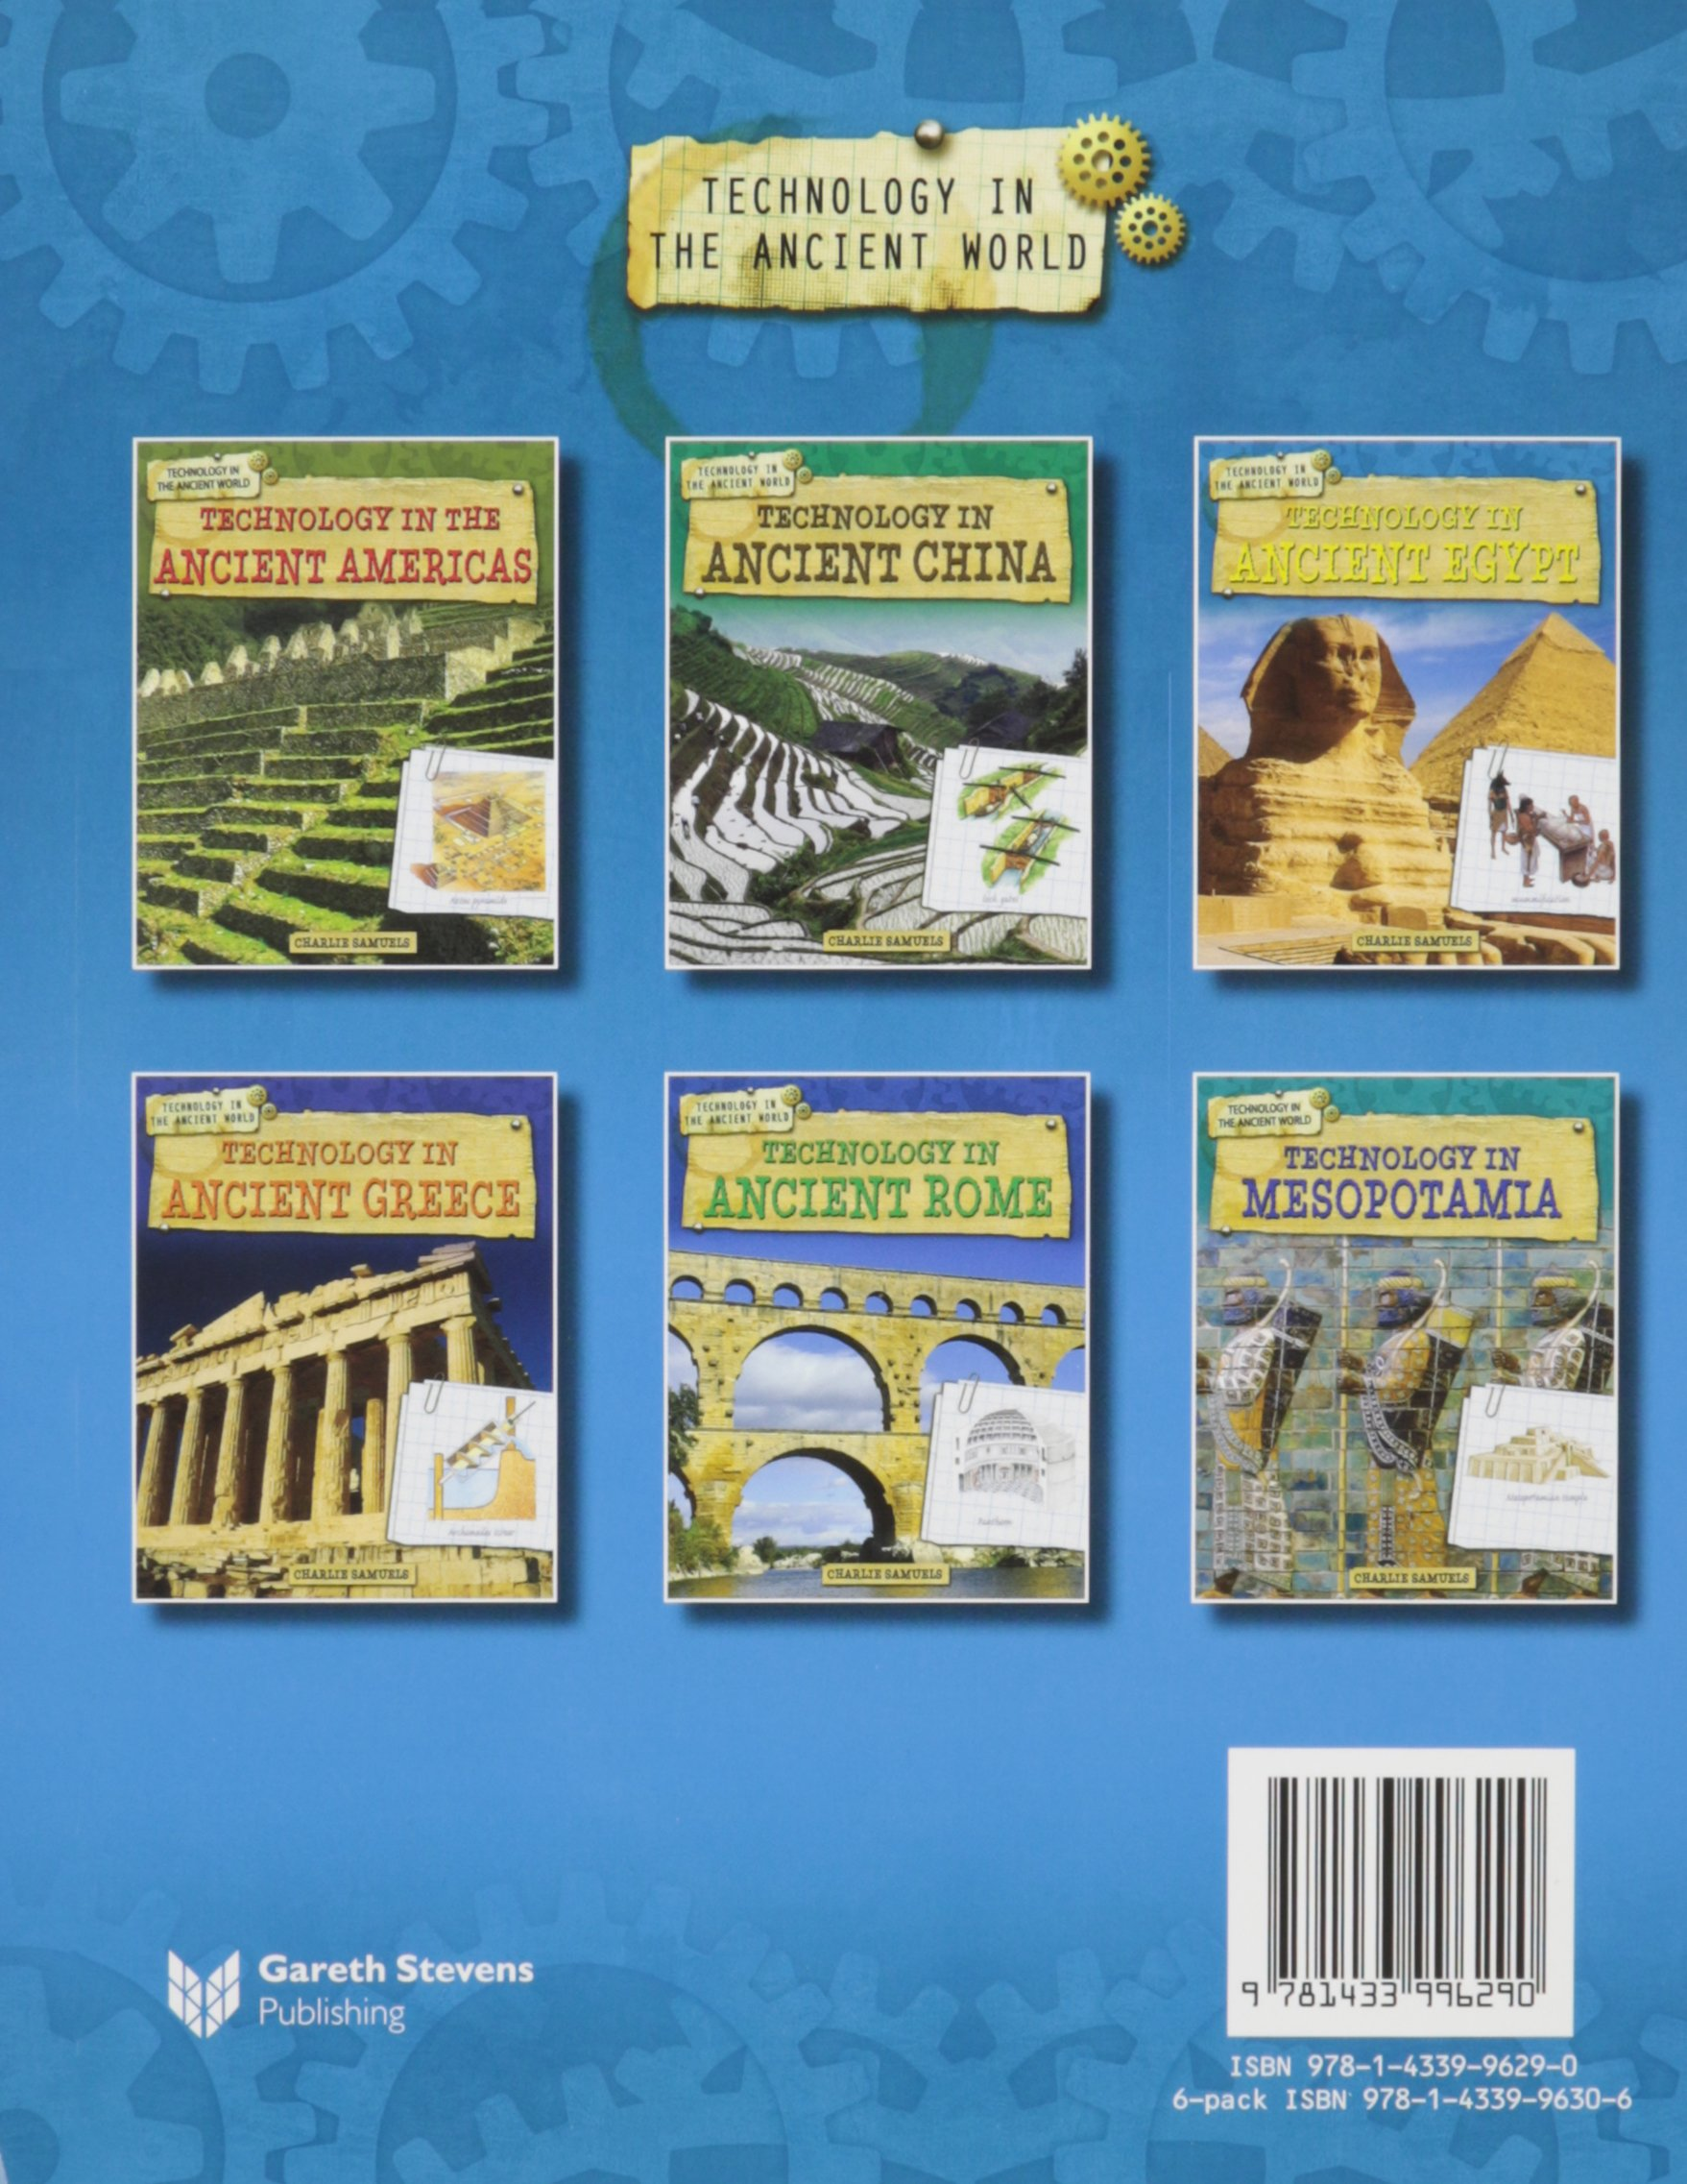 Technology in Ancient Egypt (Technology in the Ancient World) by Gareth Stevens Pub Learning library (Image #2)